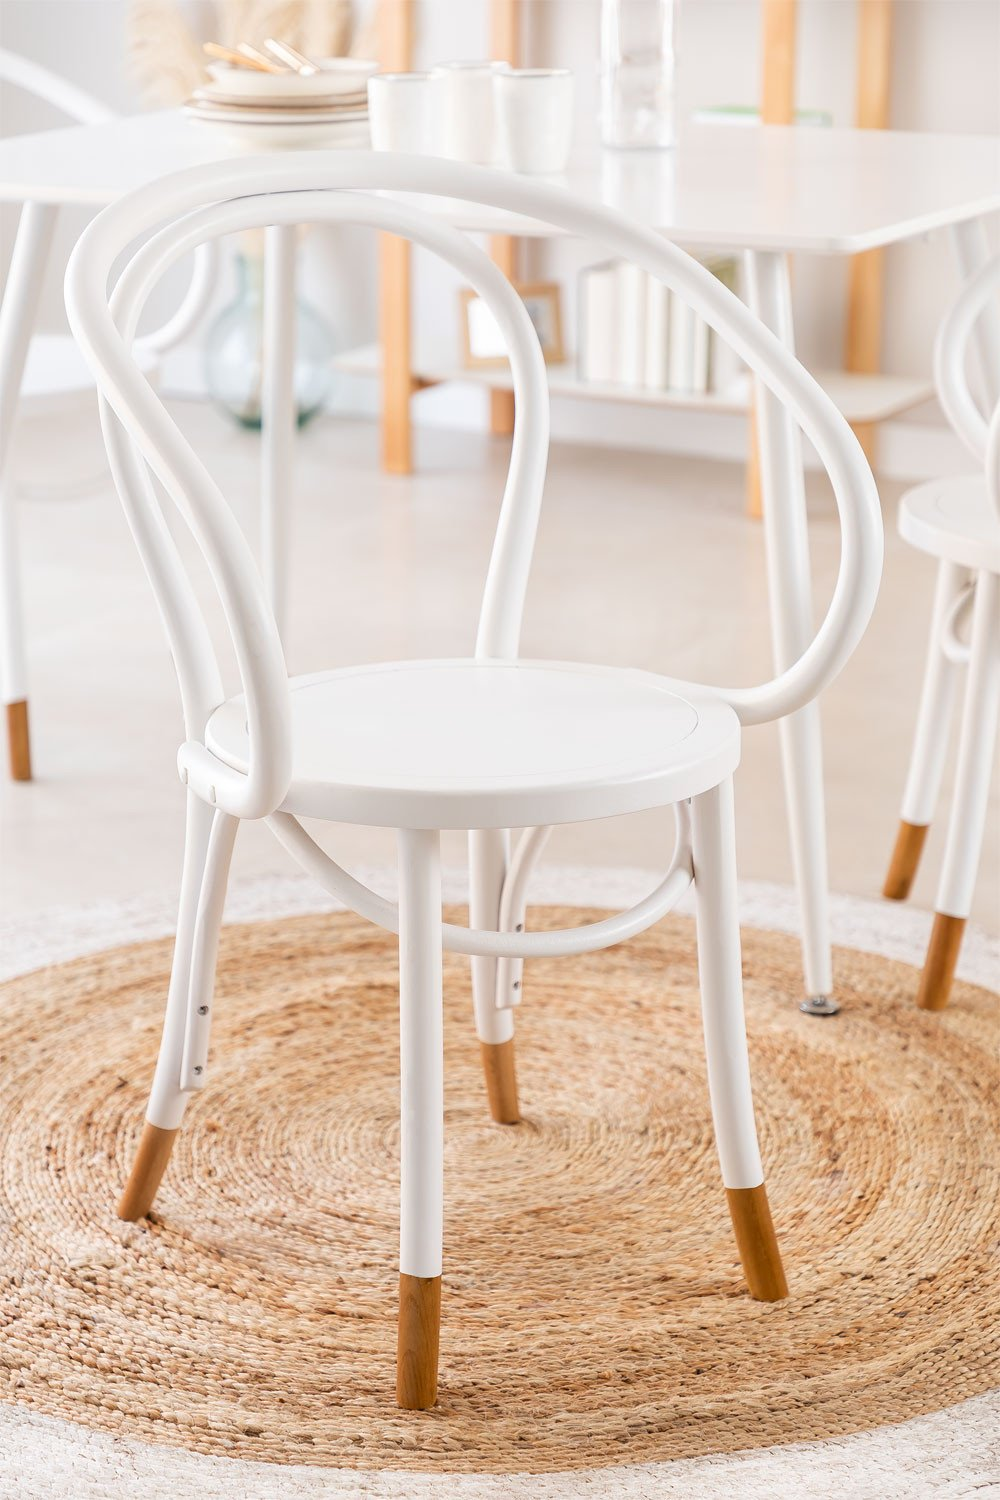 Teno Chair with Armrests, gallery image 1